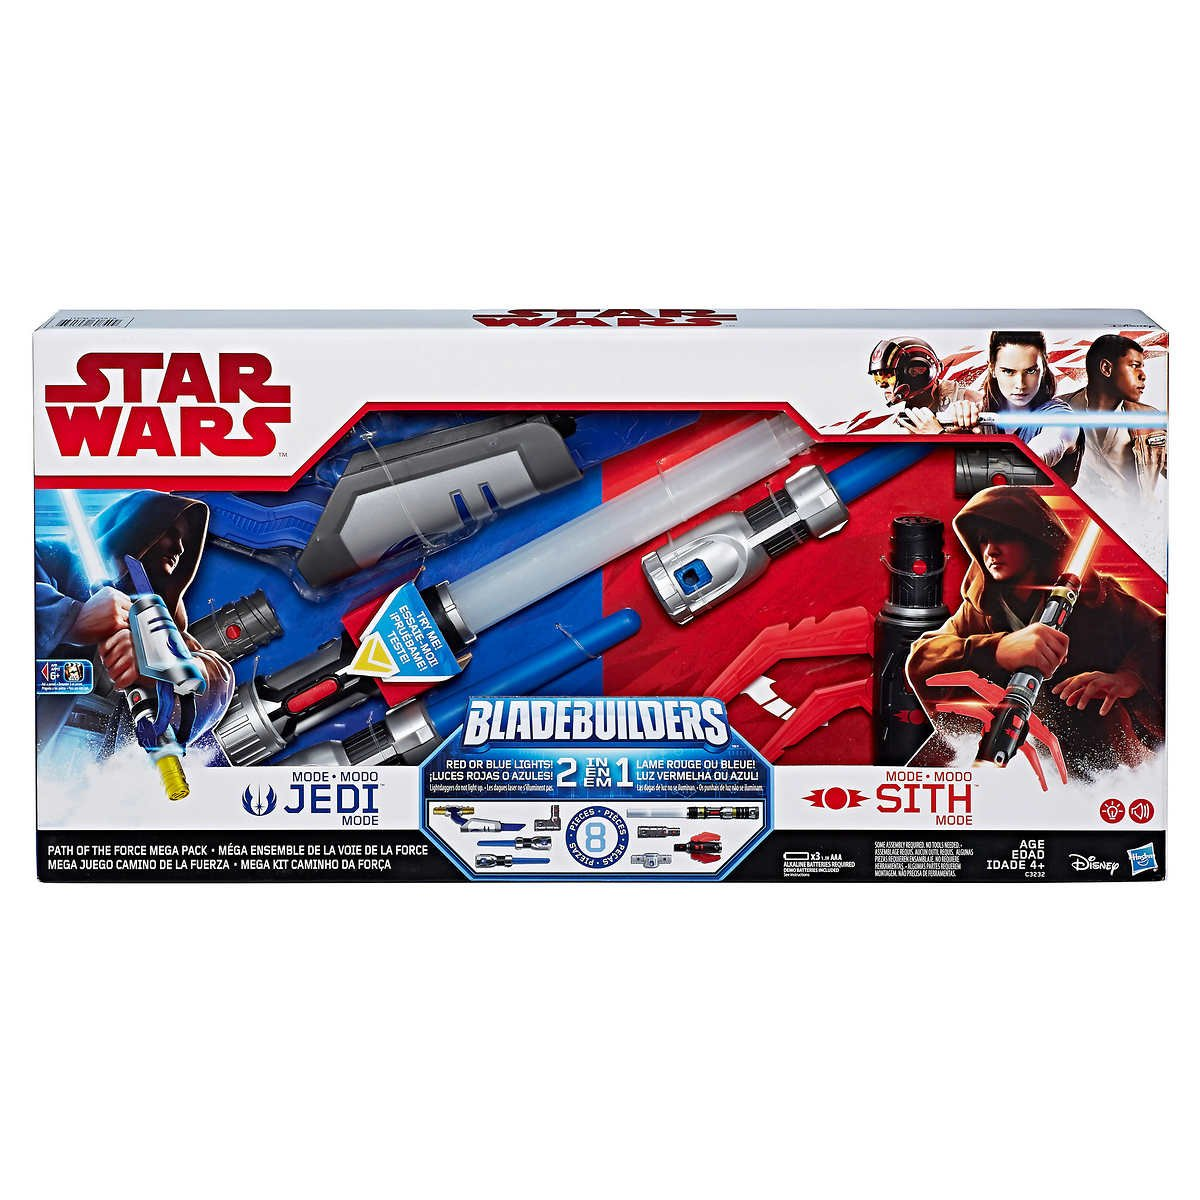 Star Wars Path of the Force Lightsaber Mega Set with Jedi and Sith Mode, Includes 2 Lightdaggers and 5 Connectors, featuring Blue and Red Lights, Let Your Kids Awaken the Force